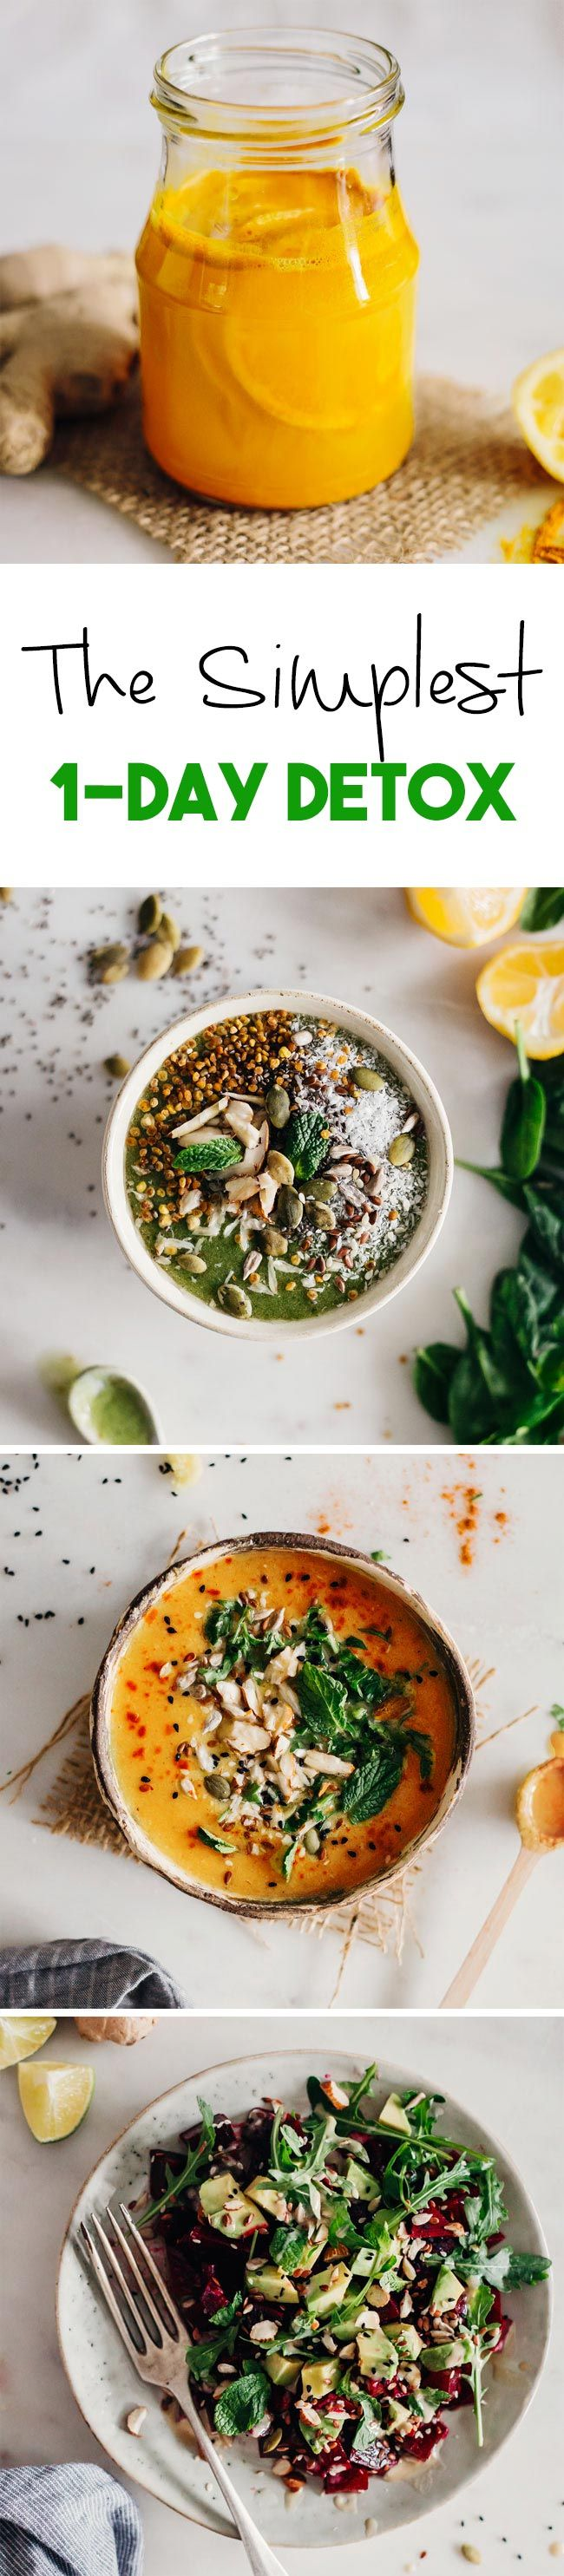 1-Day Detox with simple ingredients and easy recipes #detox | TheAwesomeGreen.com